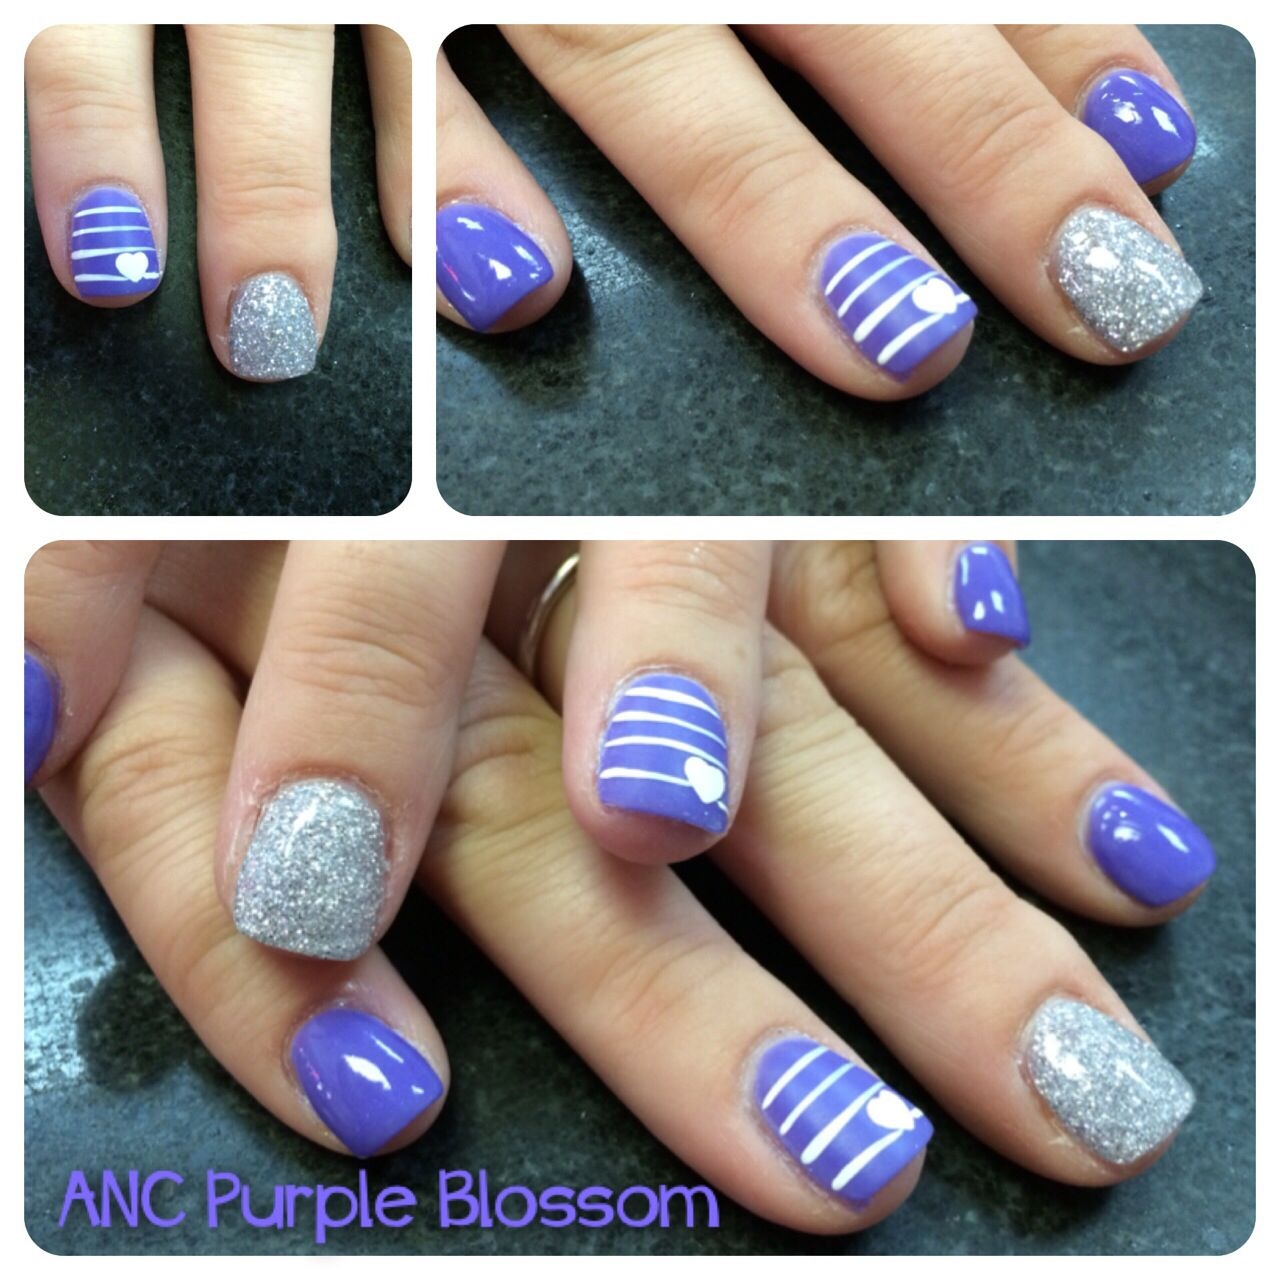 ANC purple & hearts! - ANC Purple & Hearts!! Amazing Nails Concept ANC Nails Ombre ANC